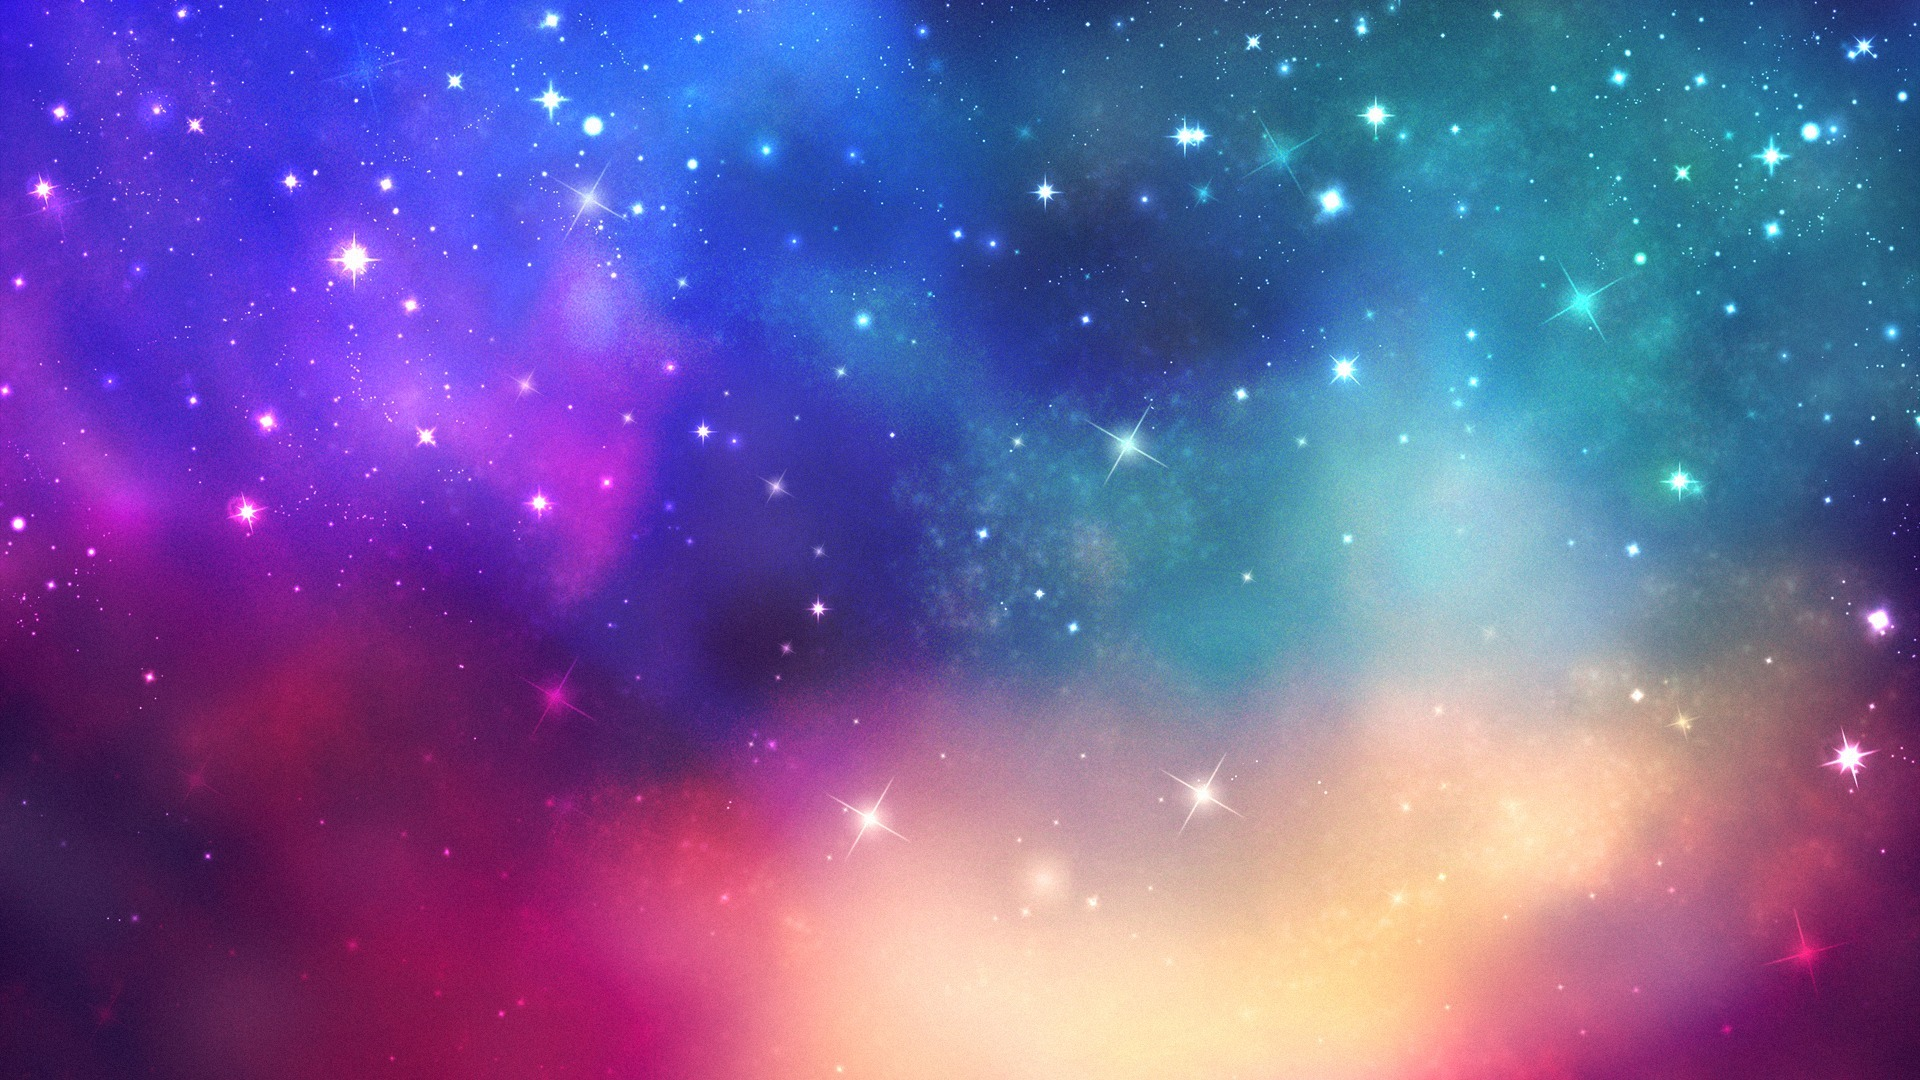 Tumblr static wallpaper space stars colors light jpg 266783 1920x1080